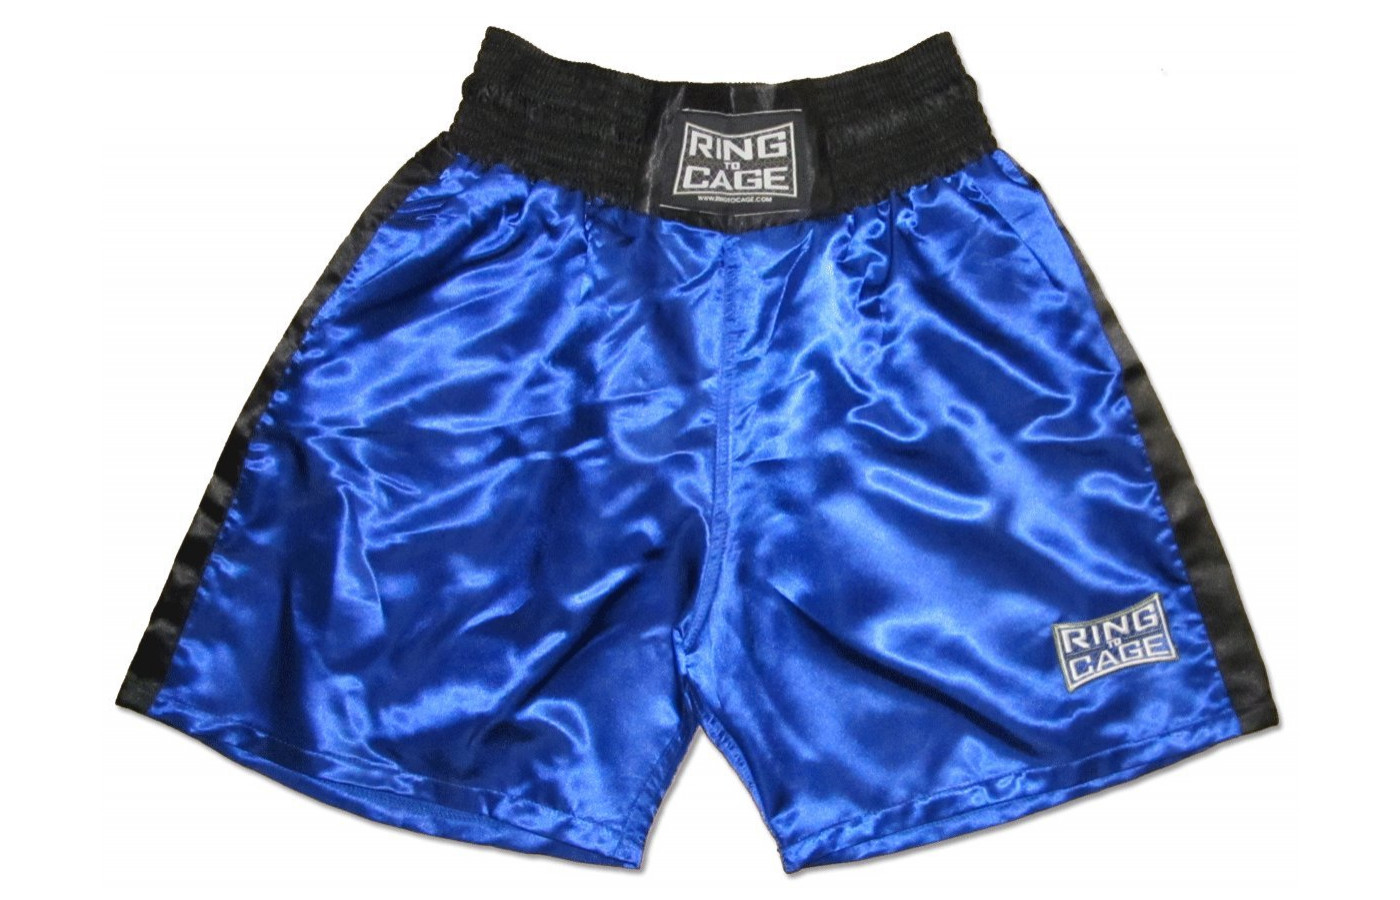 ring to cage boxing trunks blue